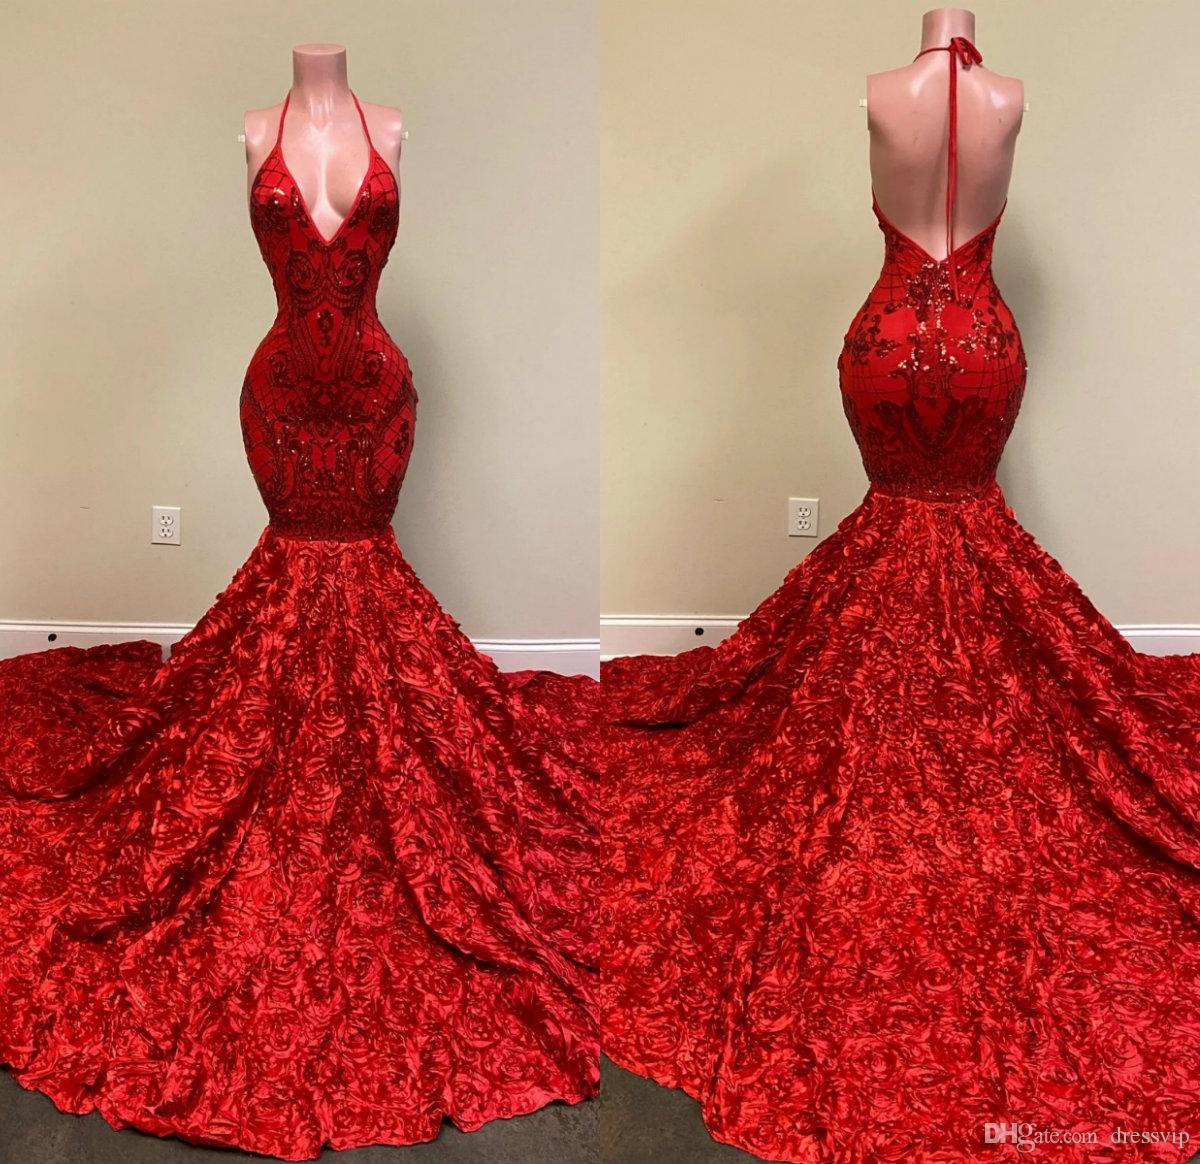 Sexy Backless Red Evening Dresses Halter Deep V Neck Lace Appliques Mermaid Prom Dress Rose Ruffles Special Occasion Party Gowns